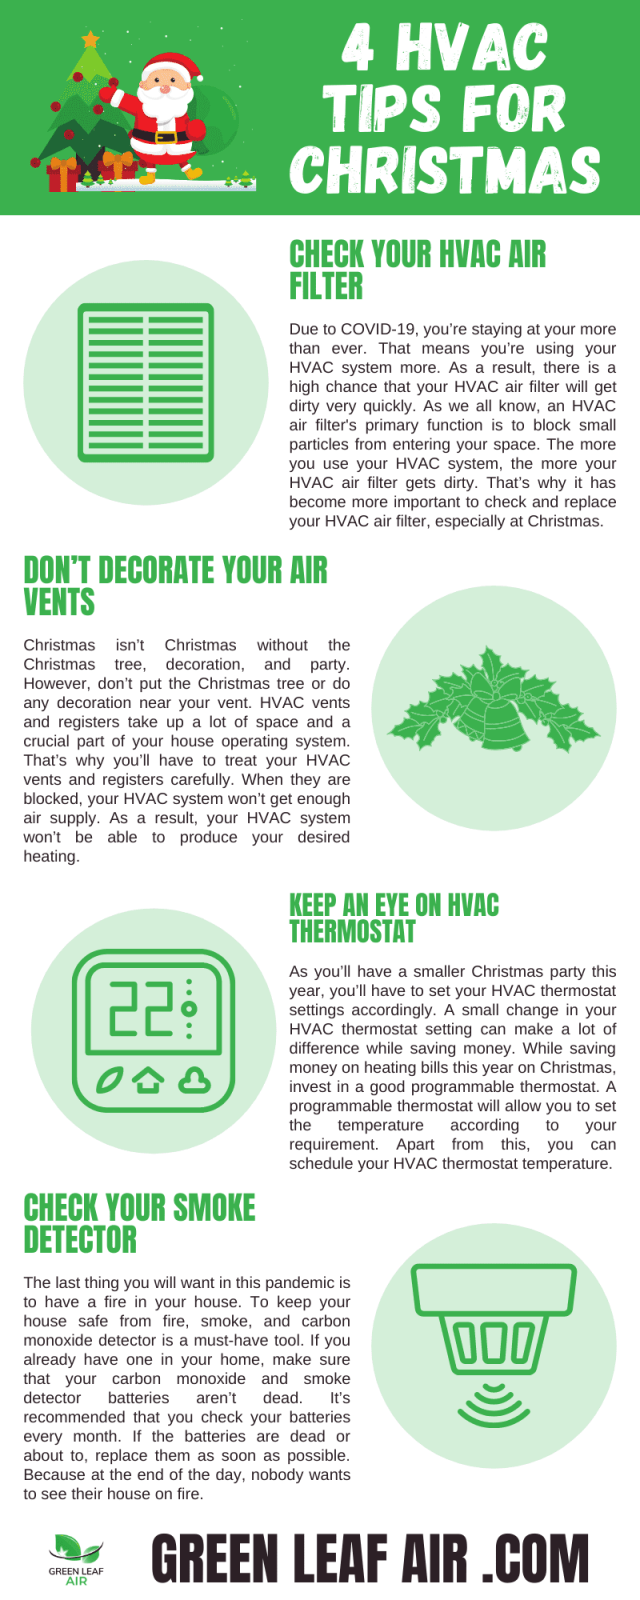 4 HVAC Tips for Christmas